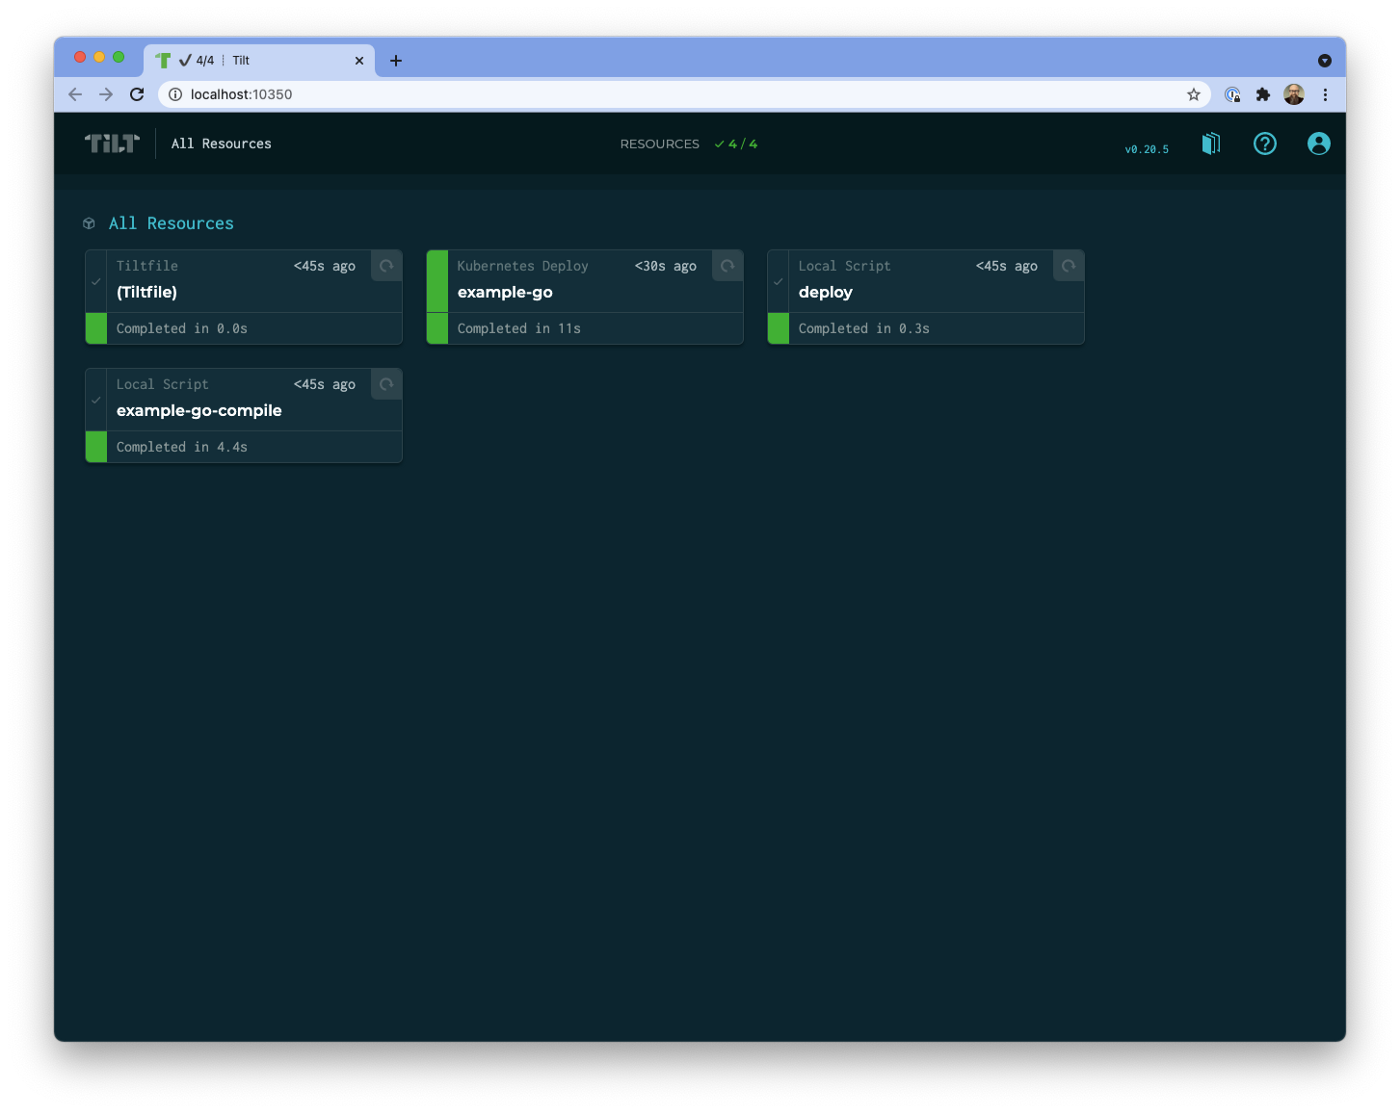 Screenshot of the Tilt UI showing the resources listed